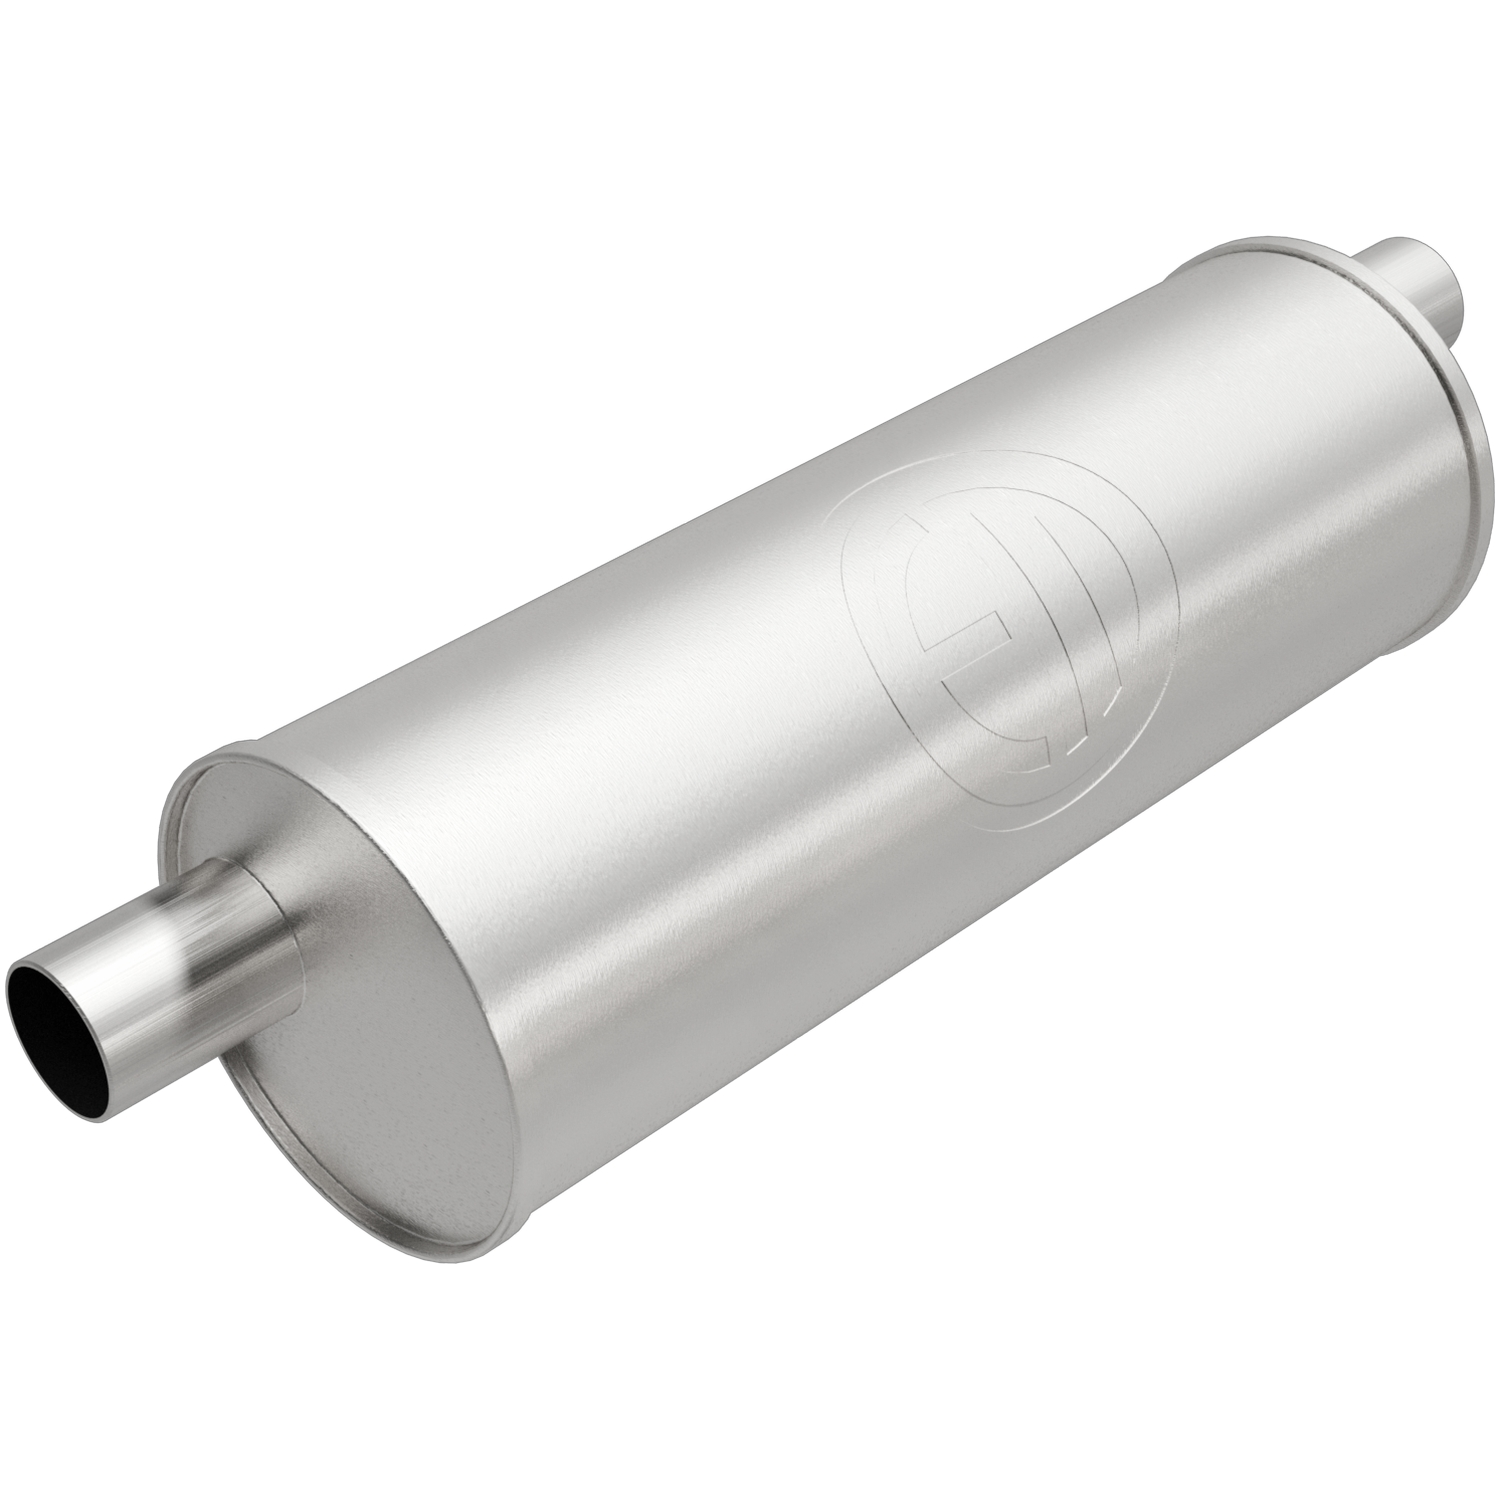 100-1742 Bosal USA Exhaust Muffler Aluminized Steel Case